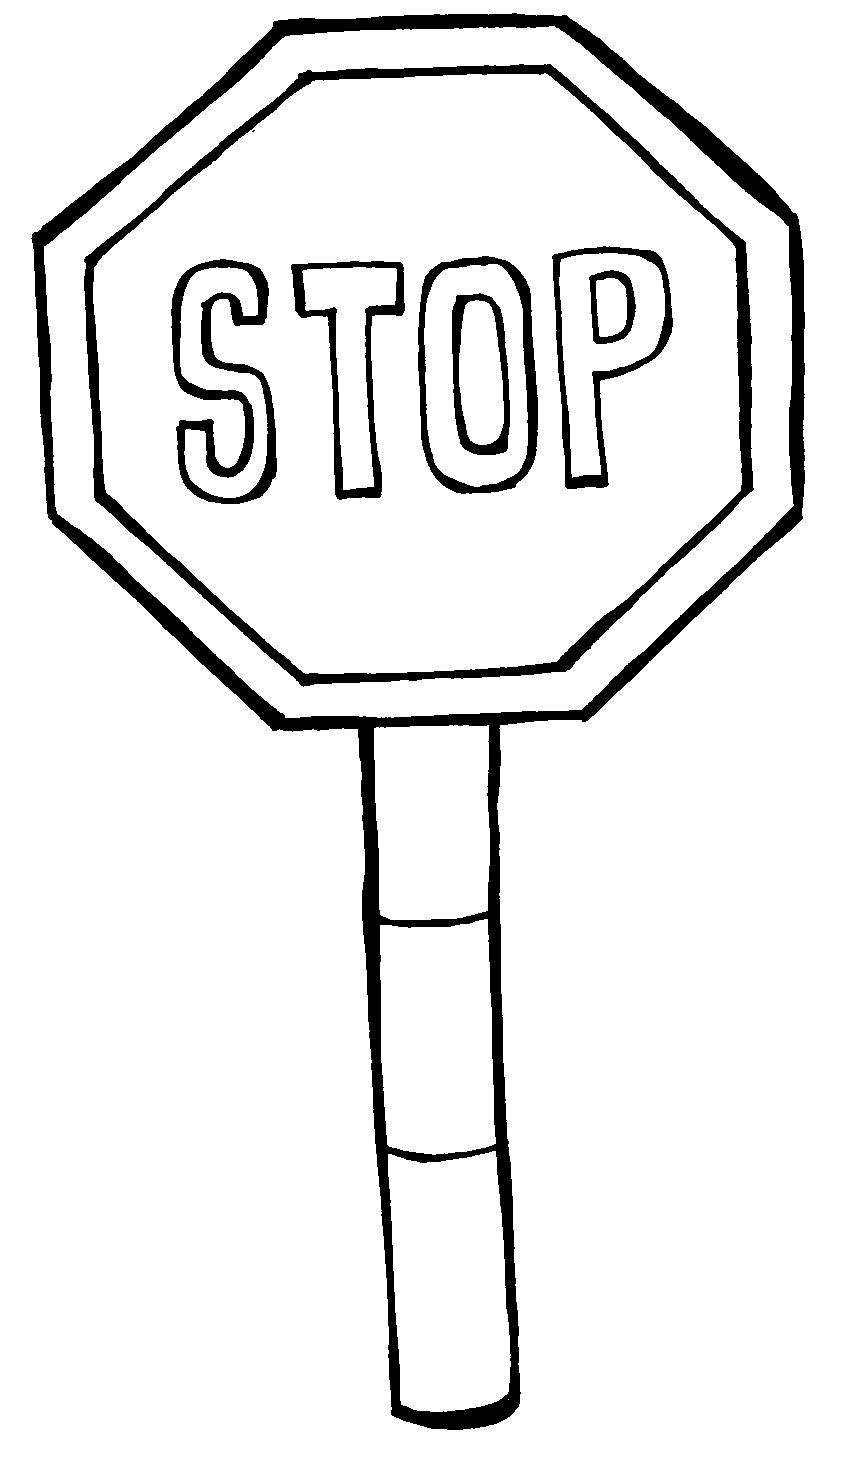 Colour The Road Signs Safety By Openstax Quizover Com Road Signs Coloring Pages Stop Sign